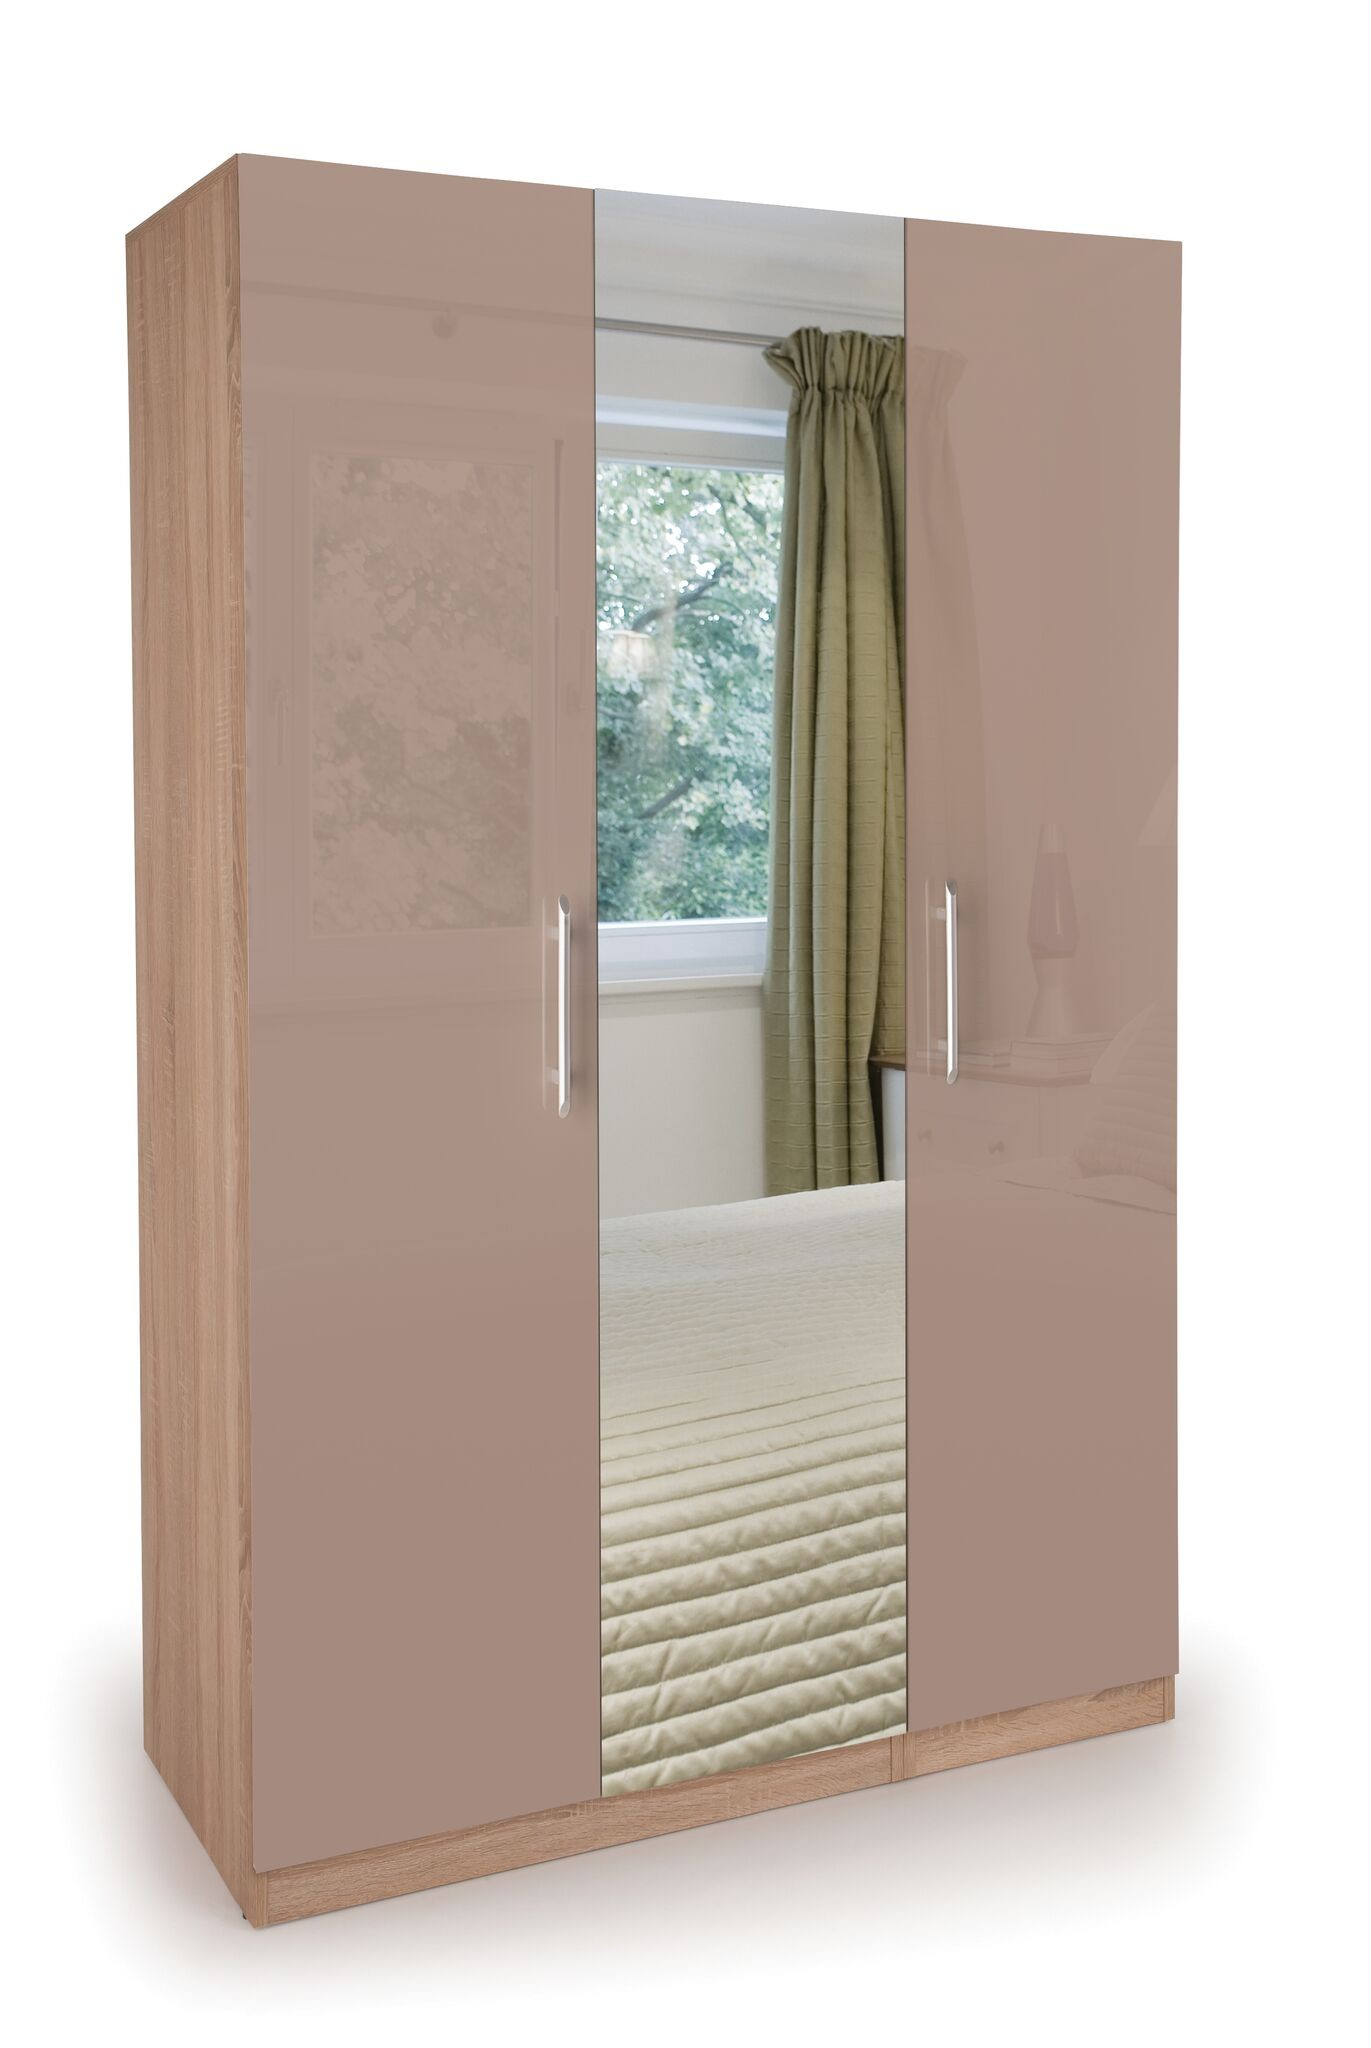 Coral Gloss Quality Bedroom 3 Door Mirror Wardrobe - High Gloss Mocha Doors Oak Frame